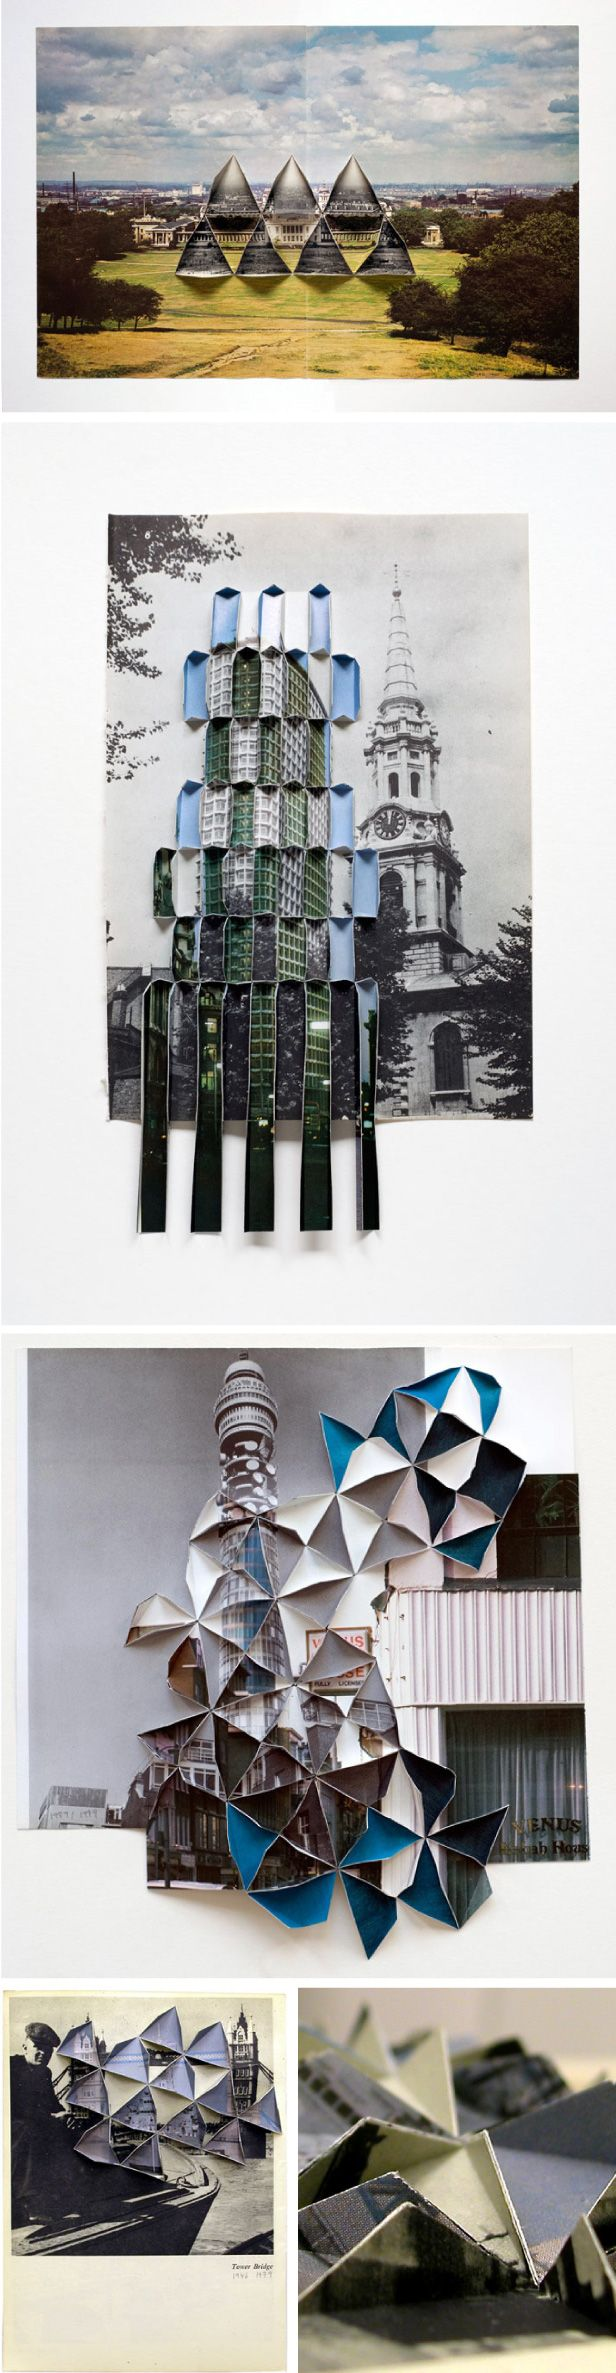 Abigail Reynolds paper art - spliced photographs, collage, paper folding http://www.abigailreynolds.com/